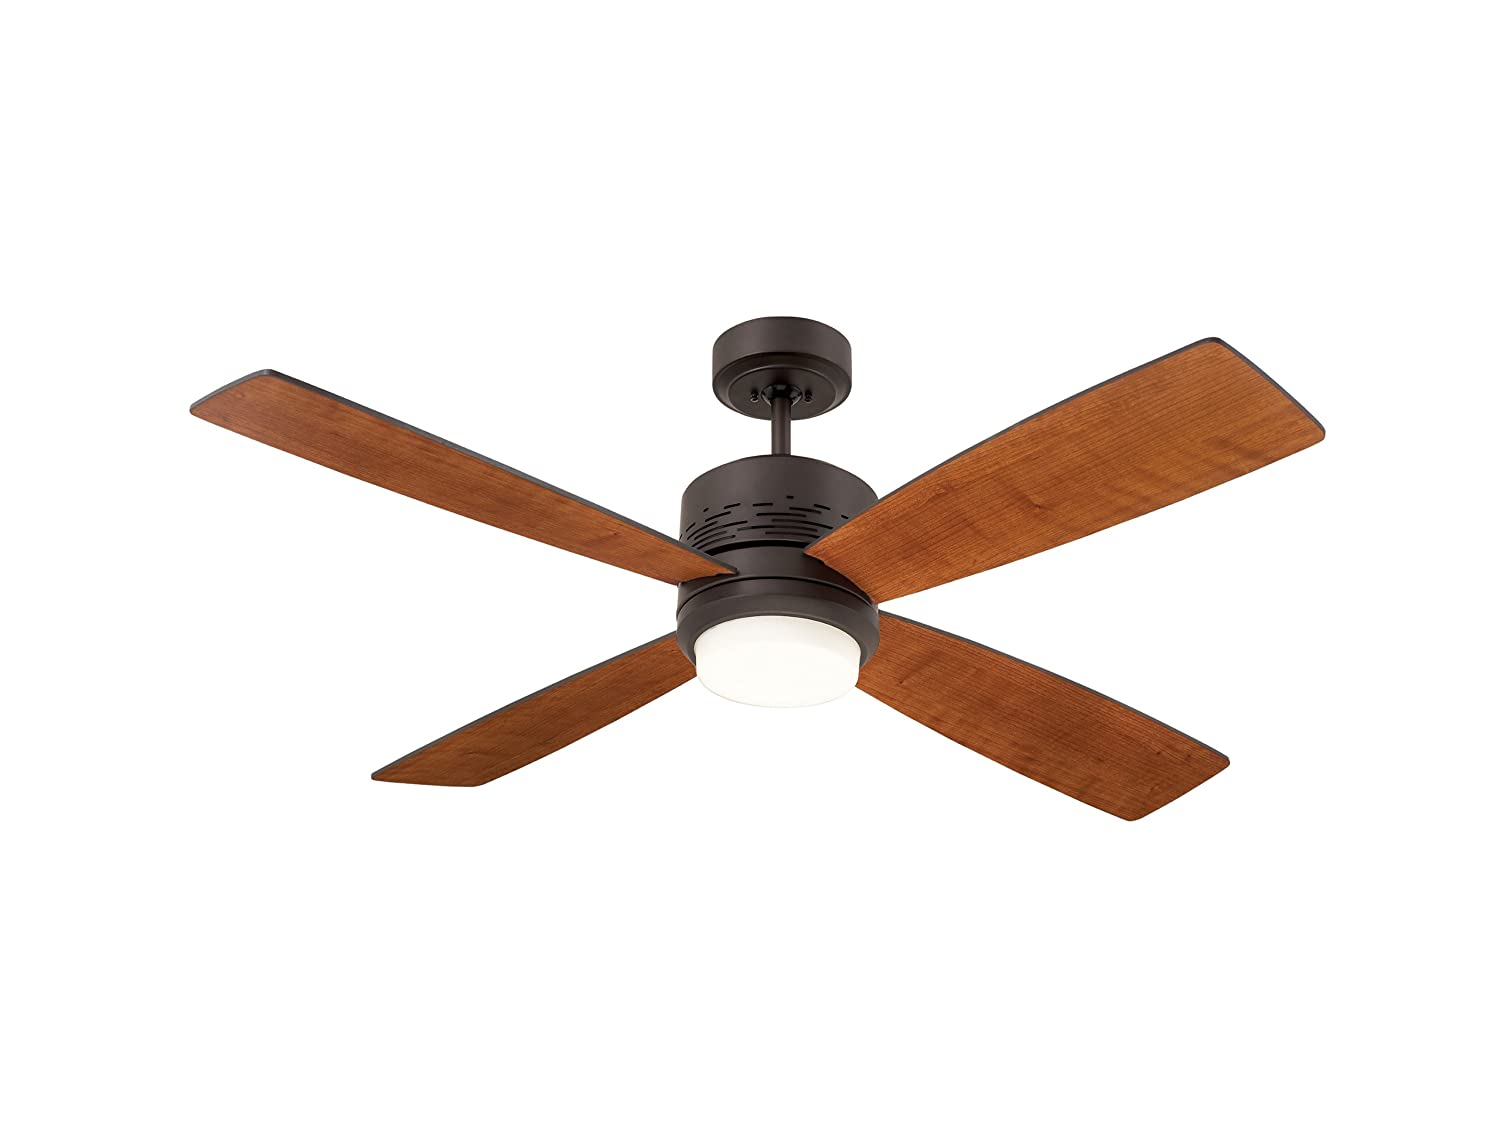 Emerson ceiling fans cf430bs highrise modern ceiling fan with light emerson ceiling fans cf430bs highrise modern ceiling fan with light and wall control 50 inch blades brushed steel finish amazon mozeypictures Choice Image